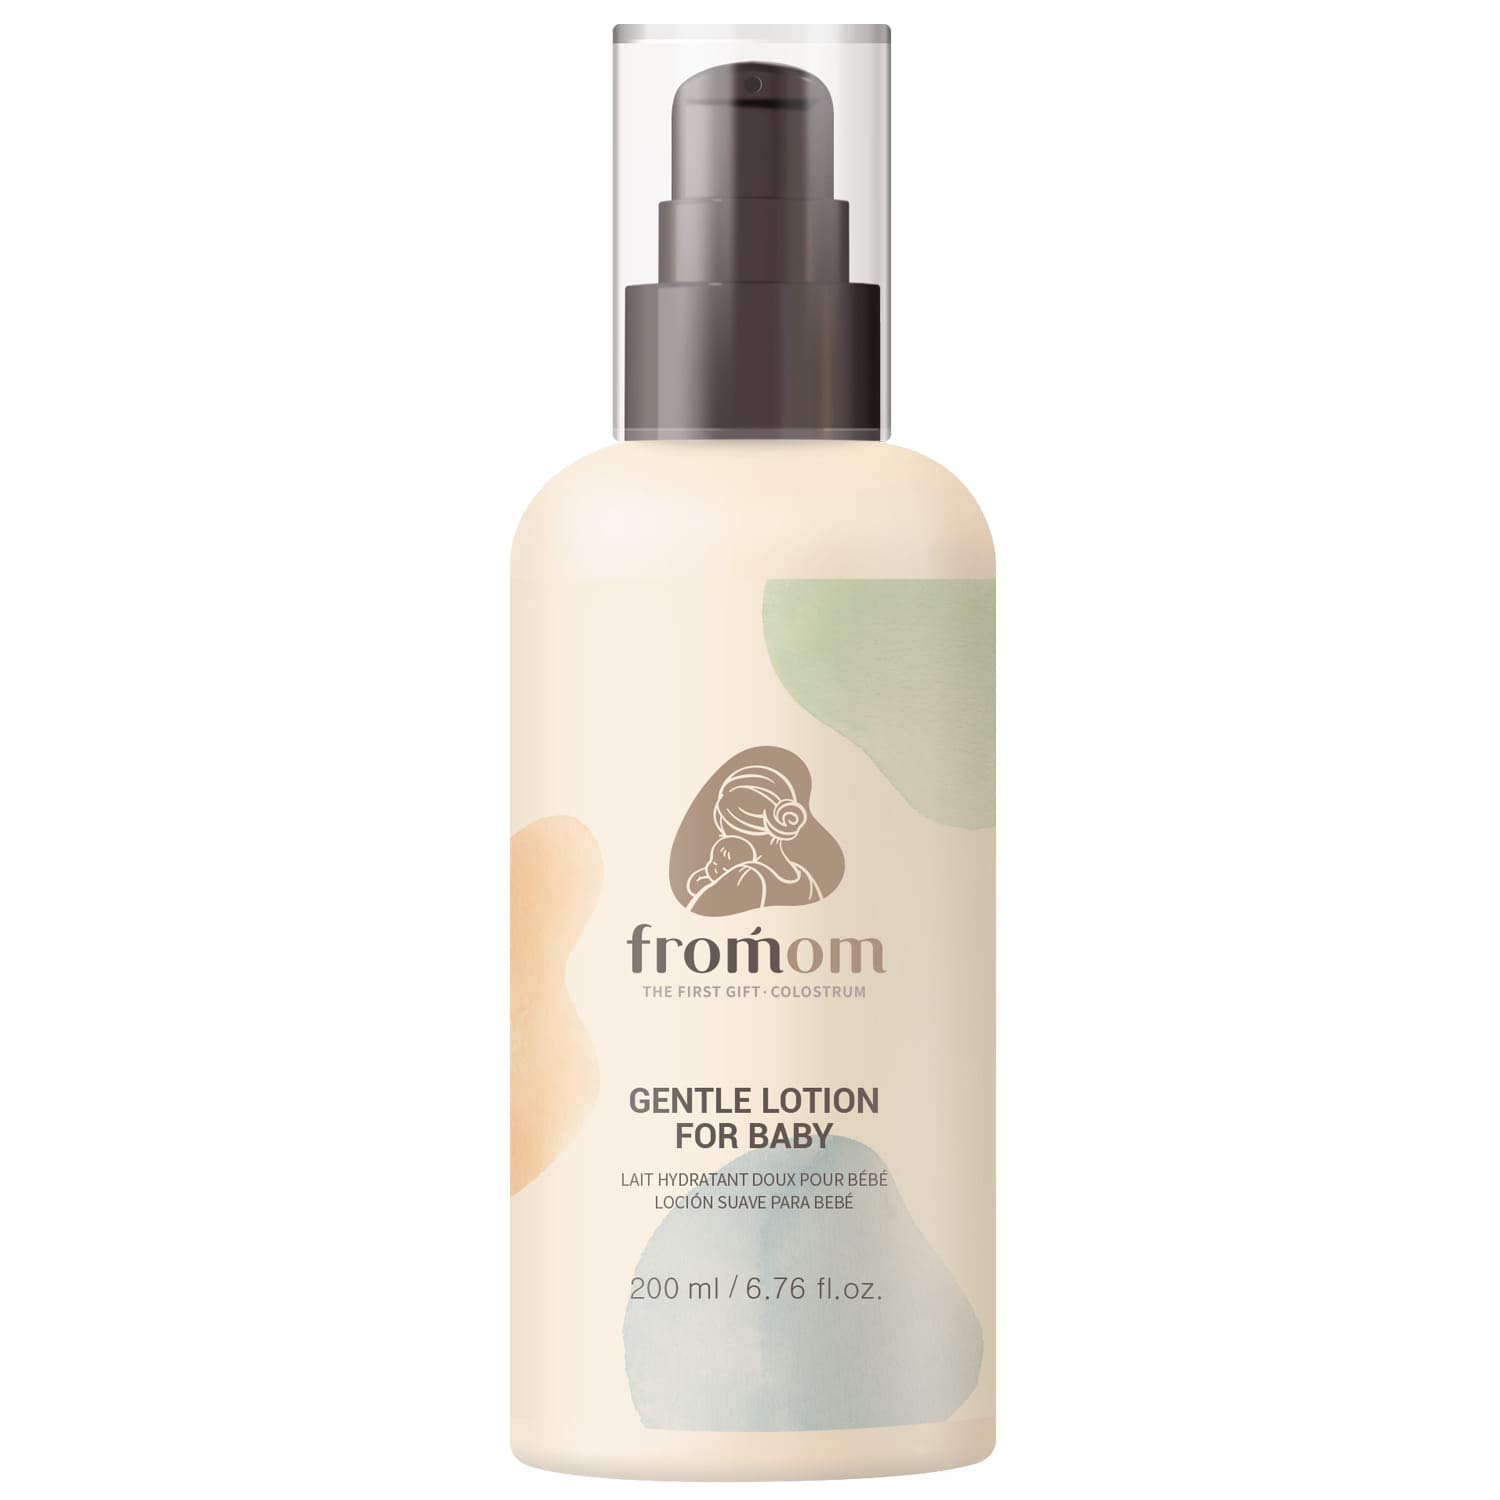 Premium Gentle Lotion for Baby, Face & Body, Hypoallergenic, Therapy for Diaper Rash, Chapped Cheeks and Minor Scrapes - 6.76 fl.oz. by fromom